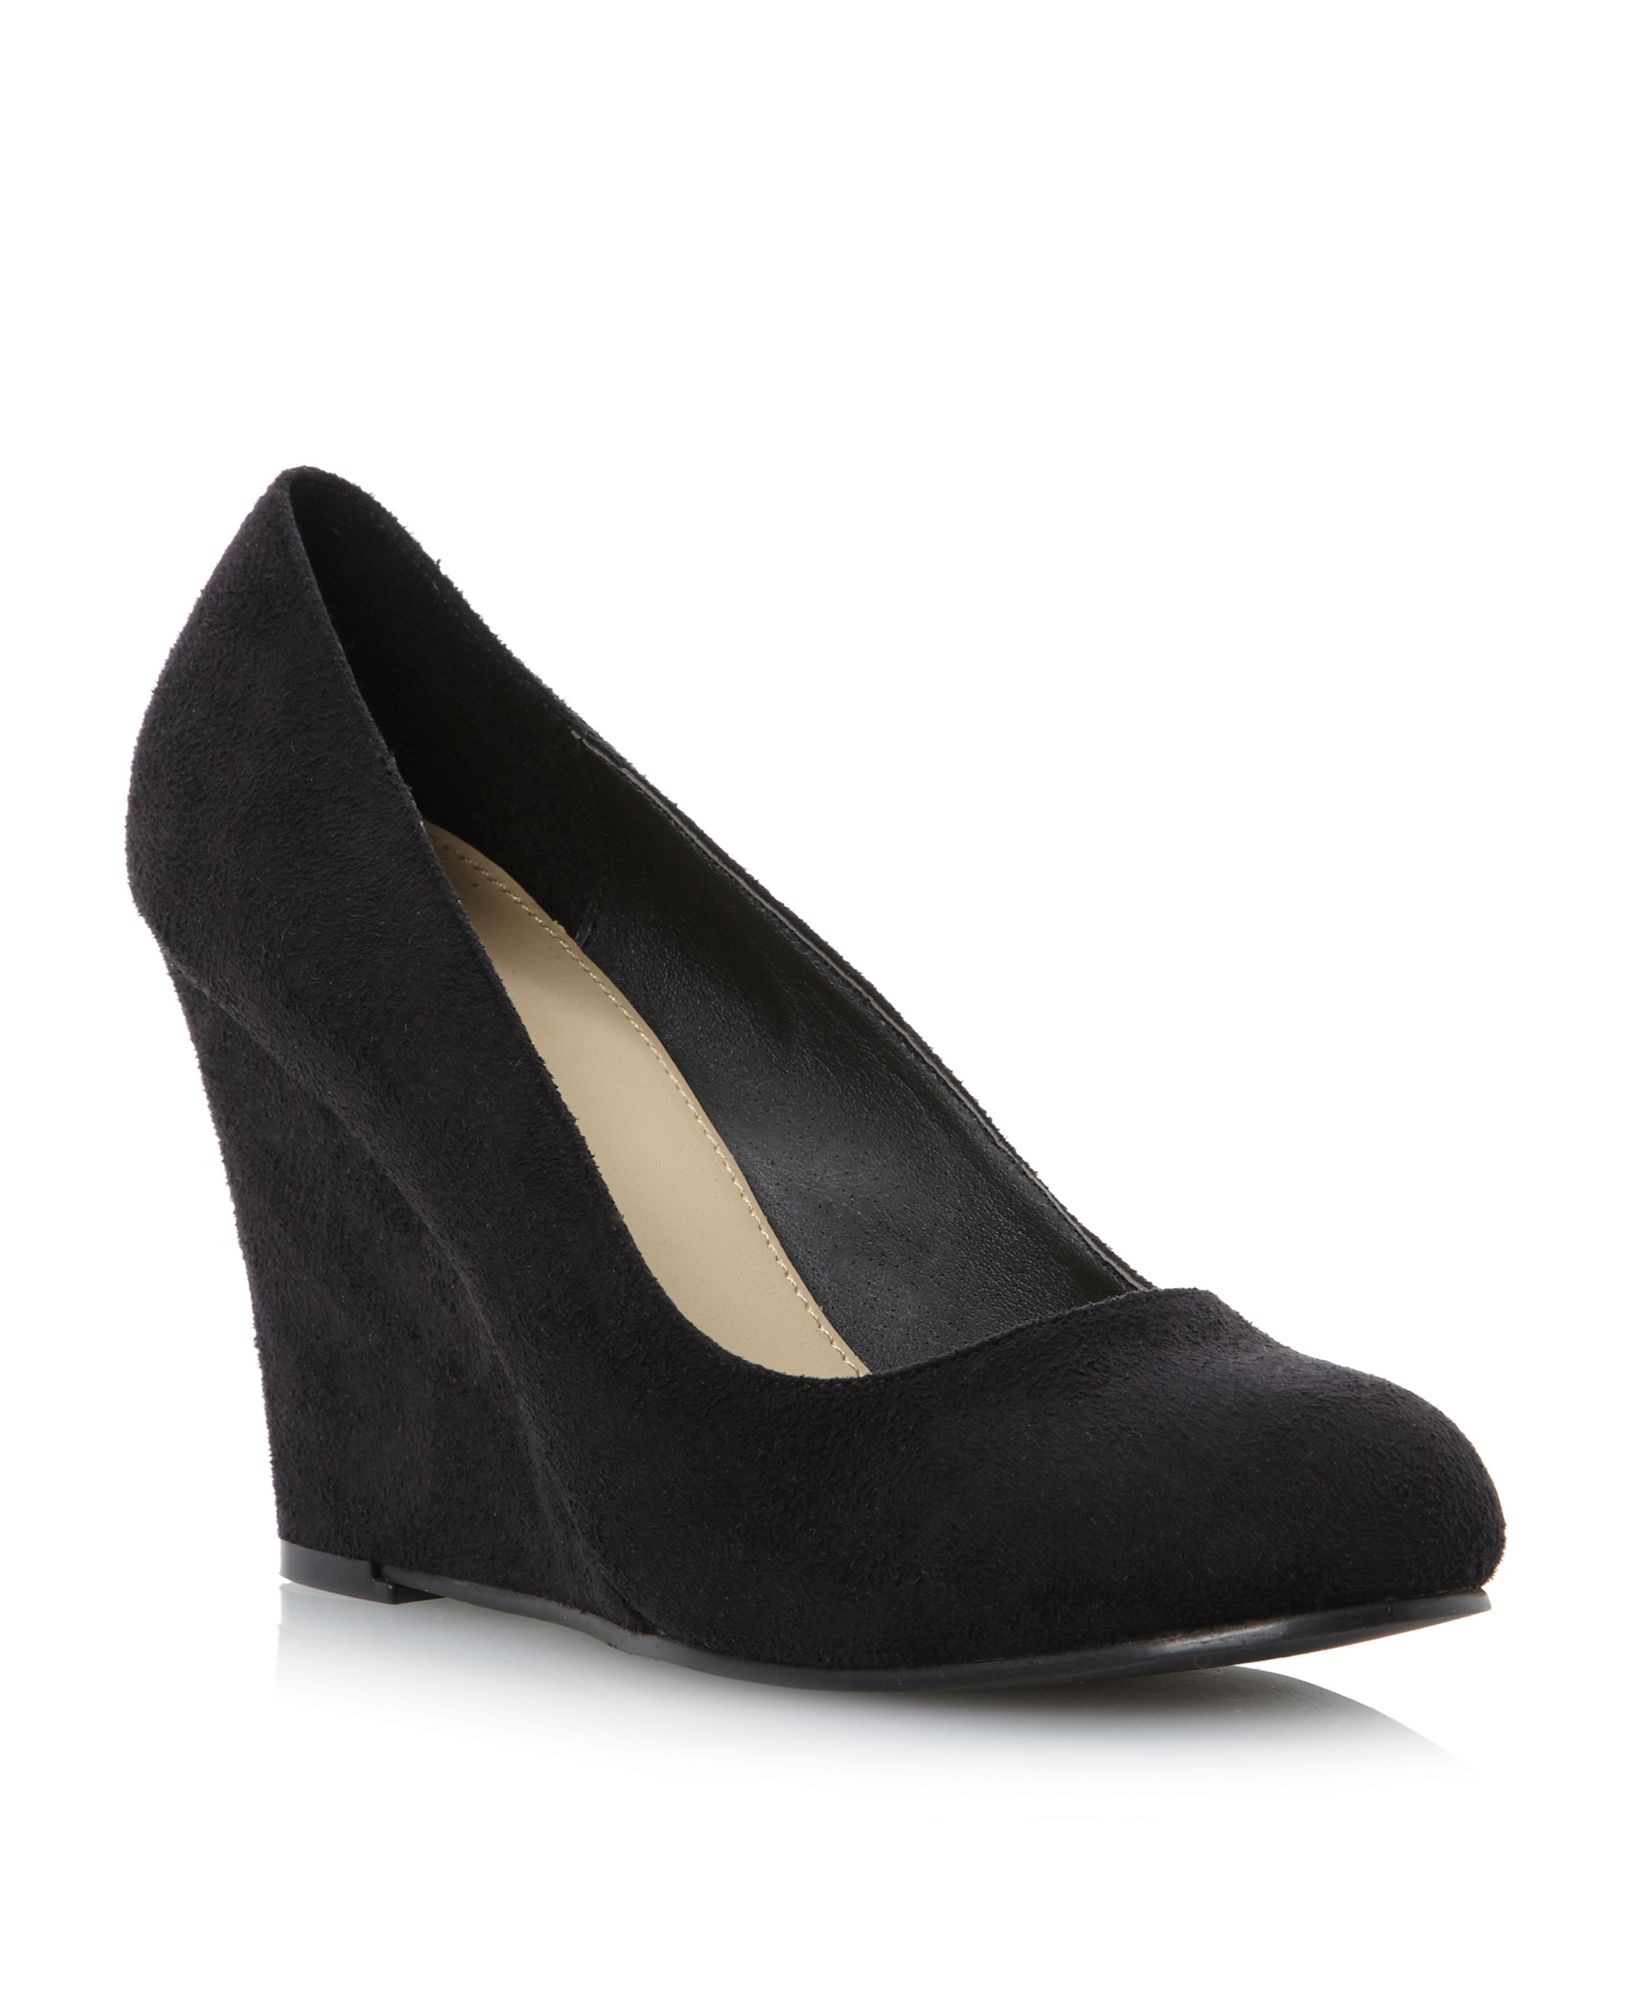 Pick a solid black pair of active sneakers with a wedge heel for a pair of shoes that will go with almost anything in the closet. Look for a pair of fabric shoes that have a high heel for a tall silhouette.